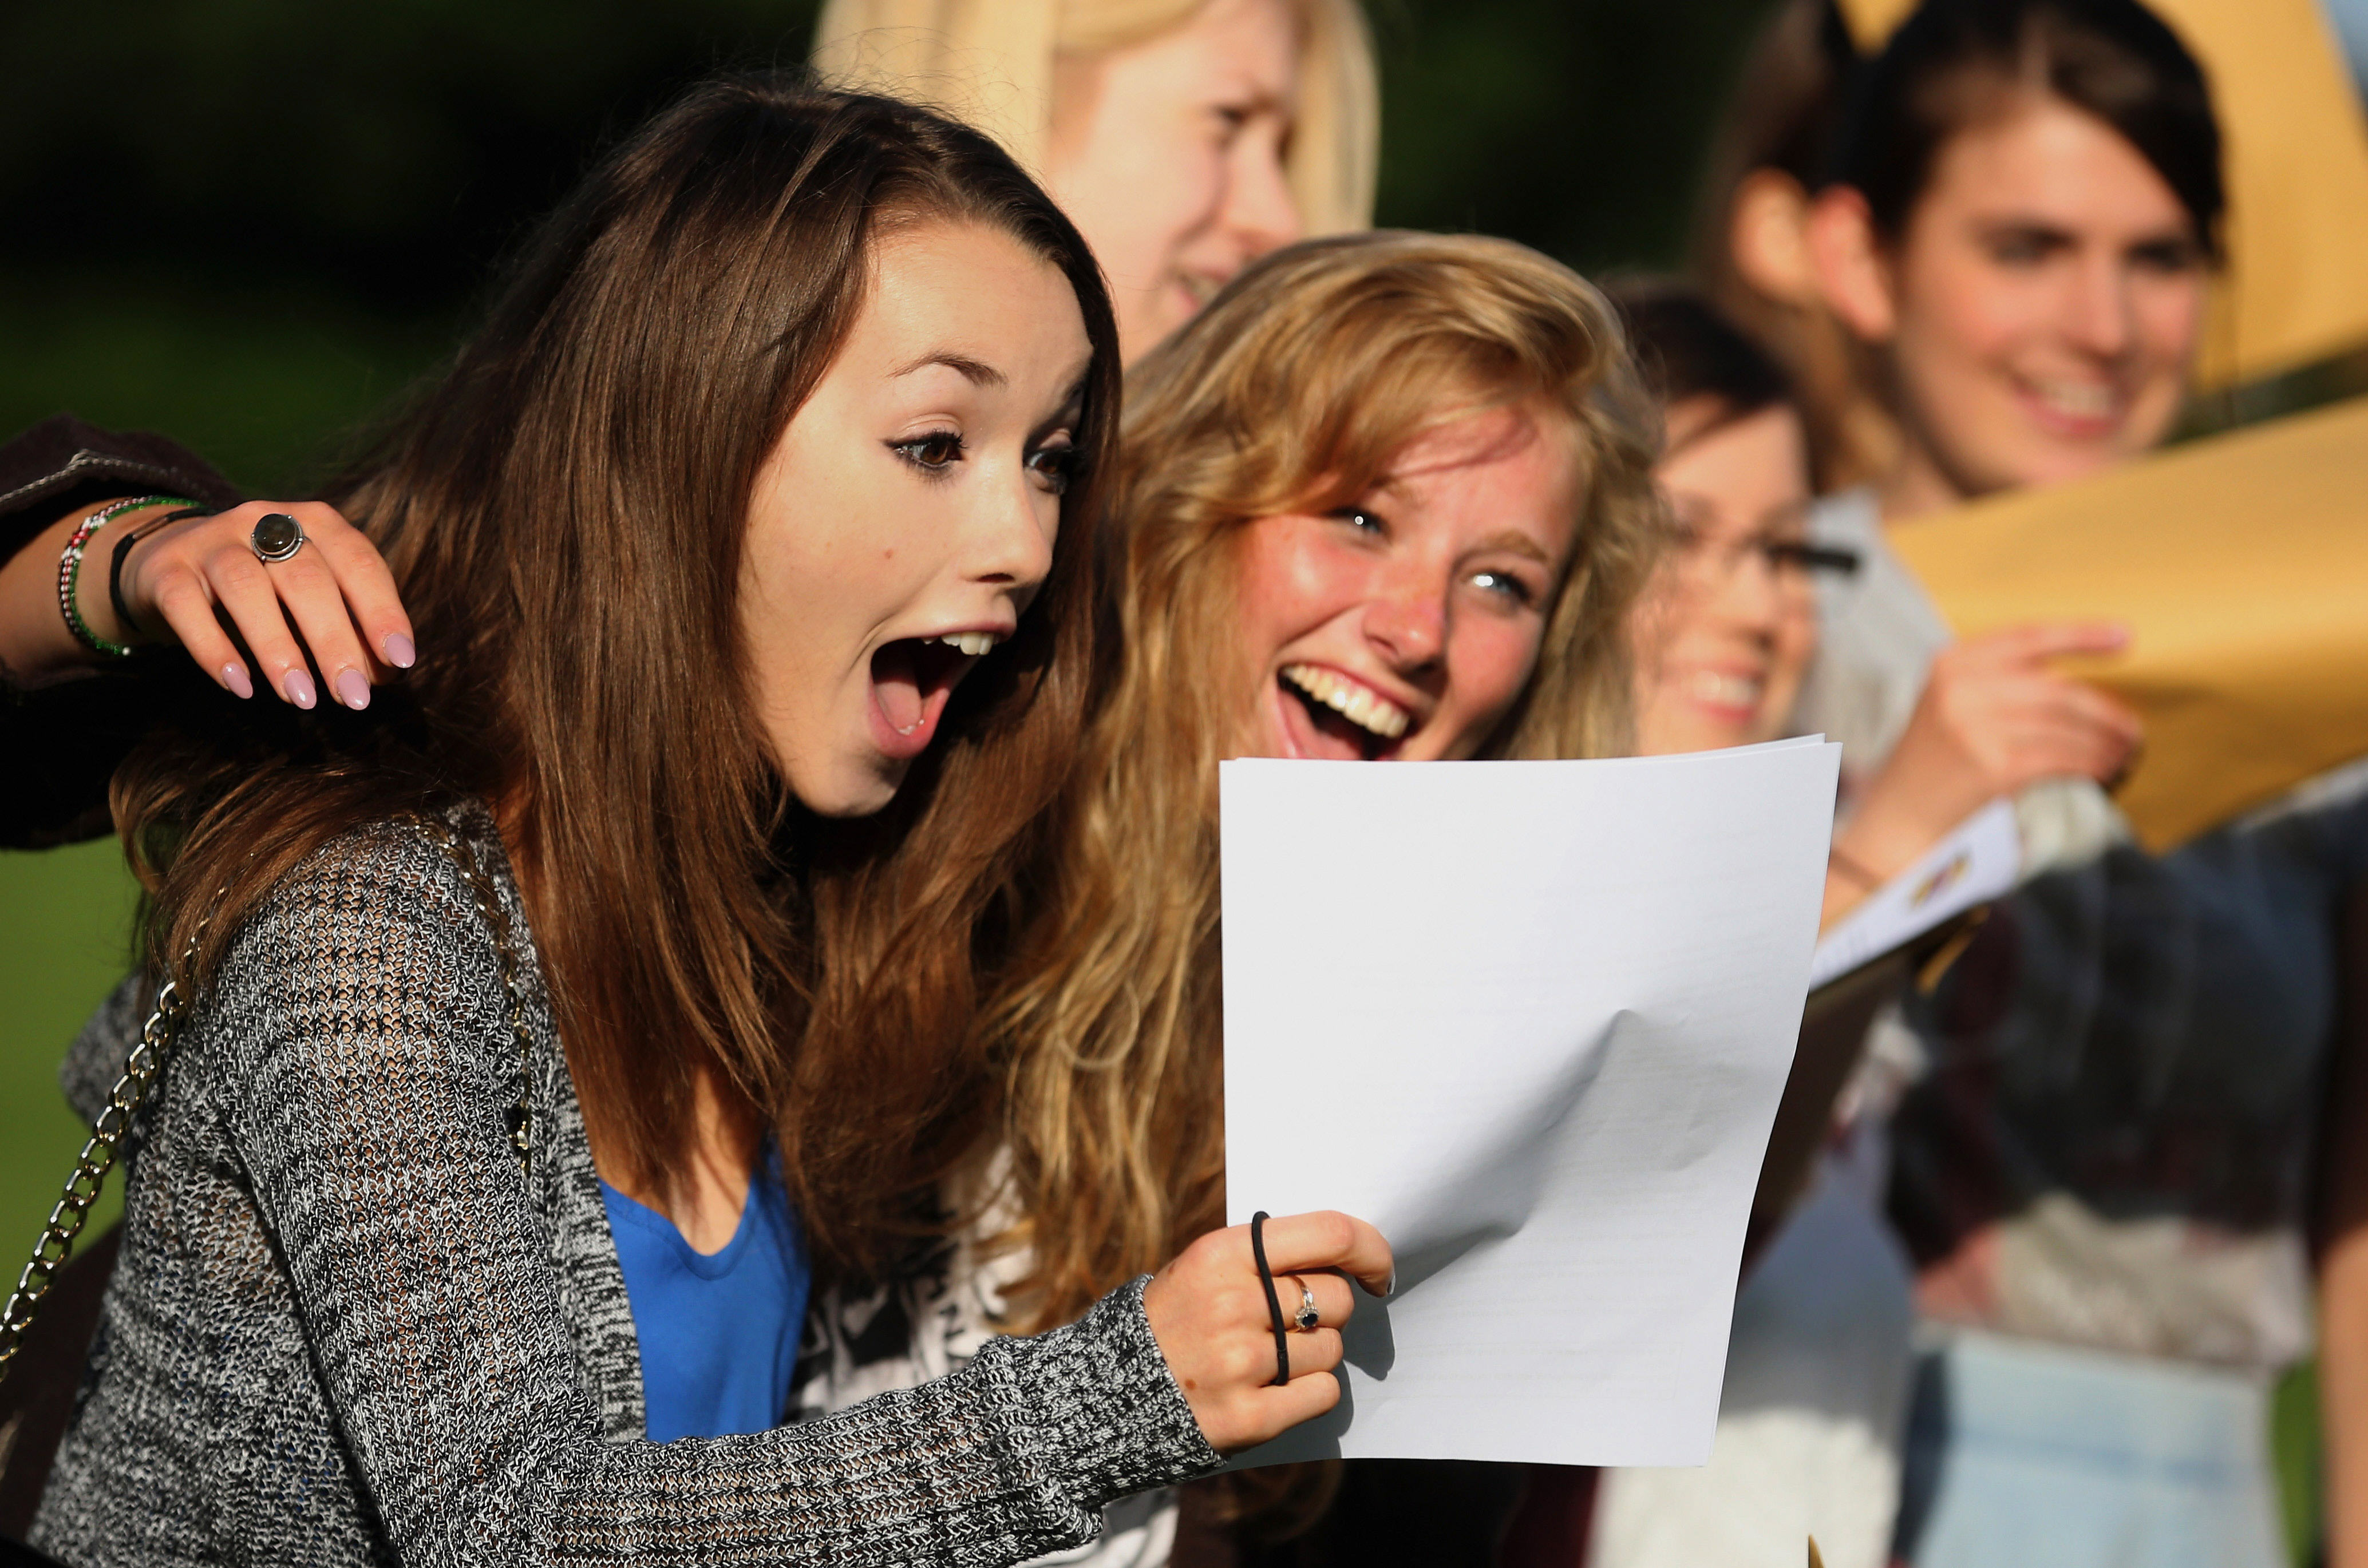 Emotional A Level Students Take To Twitter During Results Day UNILAD ay116285399manchester engla8